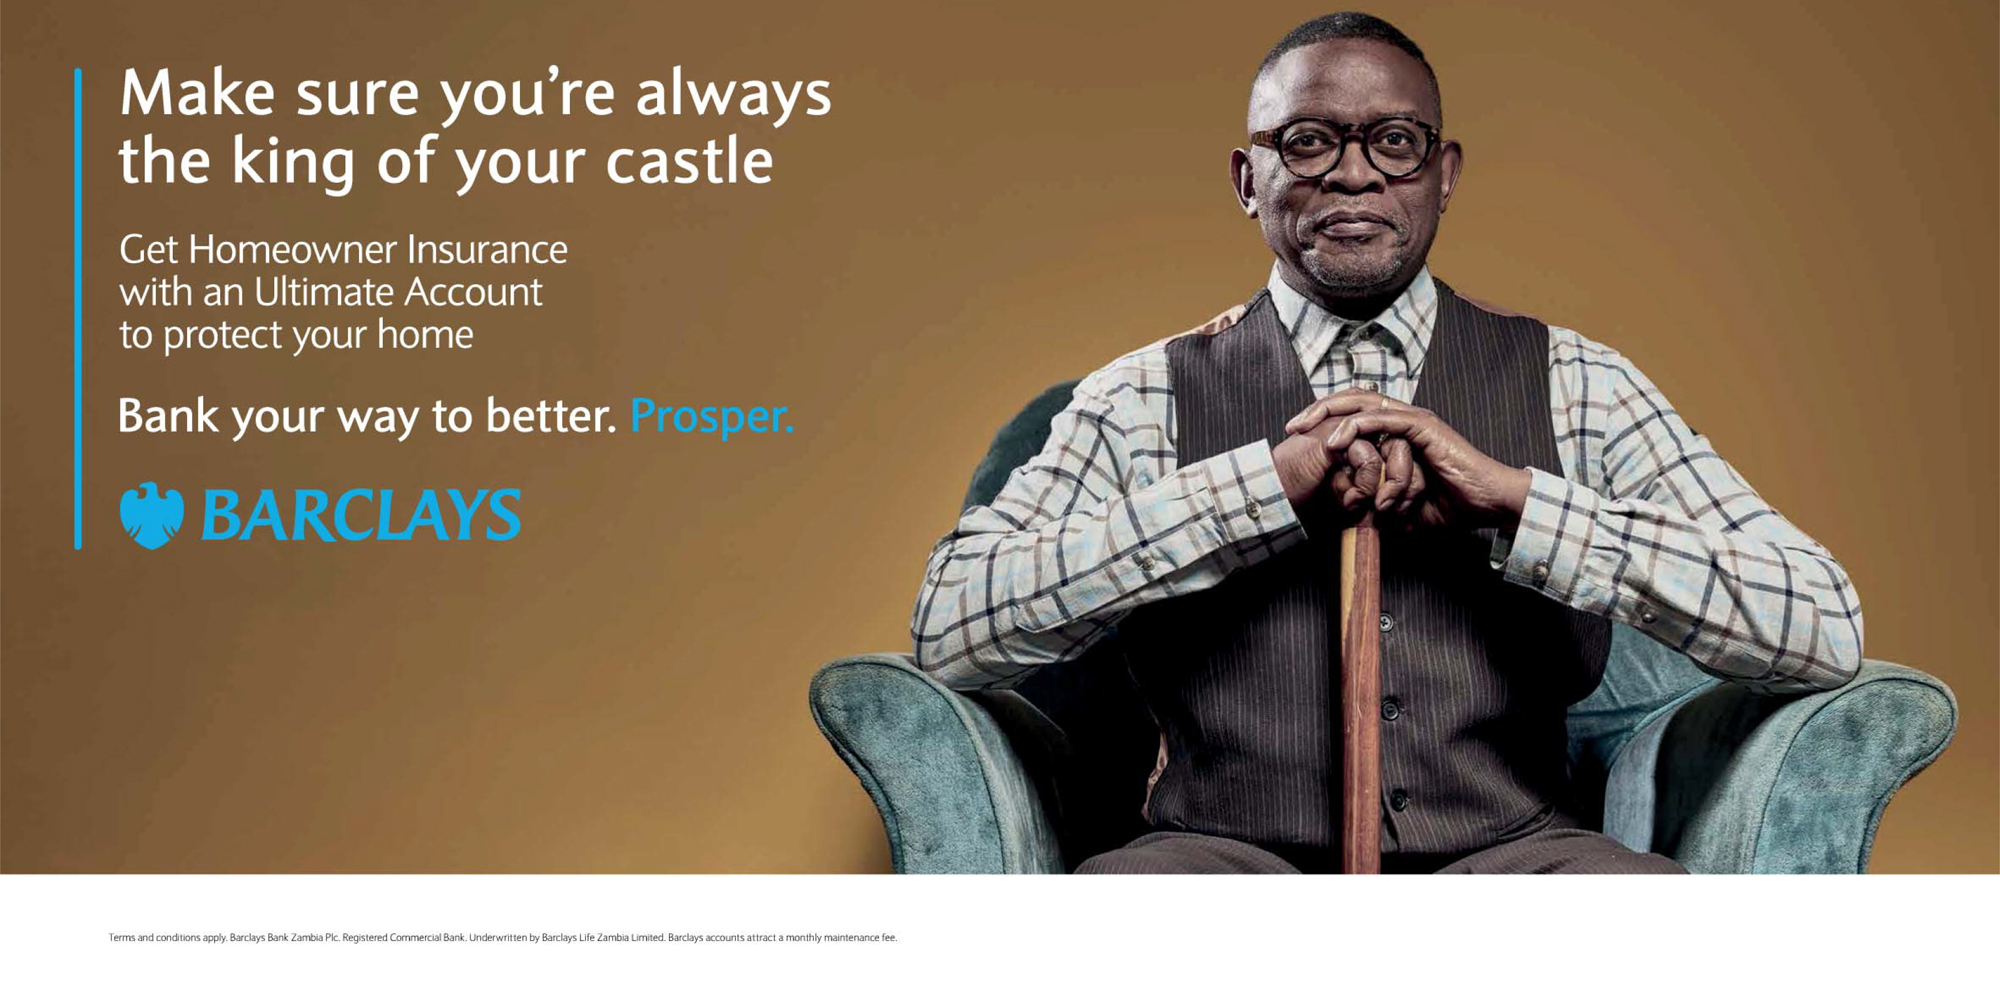 Barclays Personal Banking Campaign Toolkit 26 APRIL-76.jpg